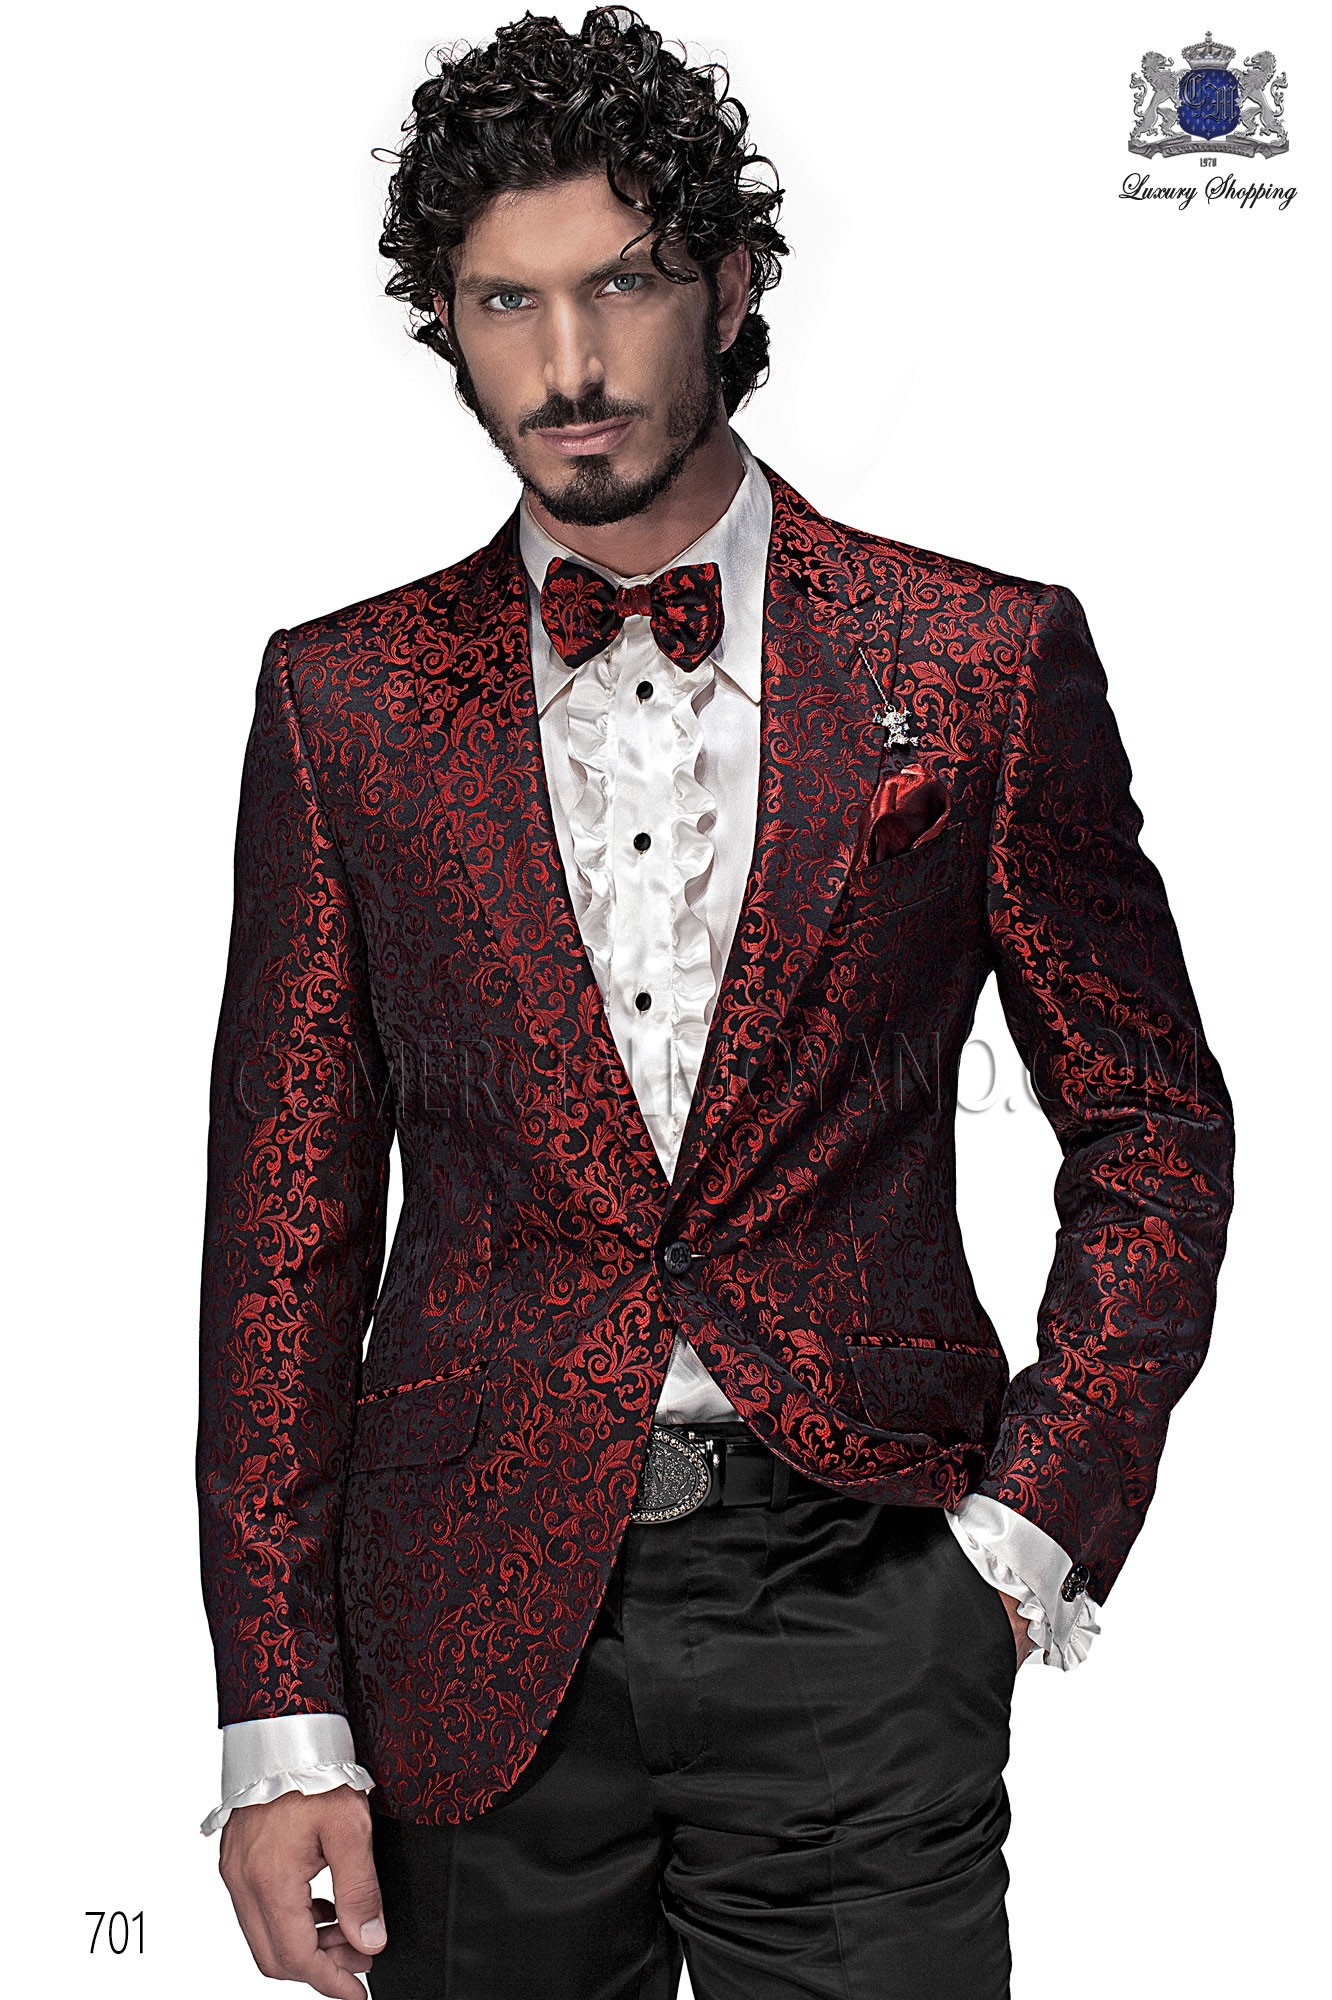 High Fashion Emotion Red Black Men Wedding Suit Model 701 Mario Moyano Collection